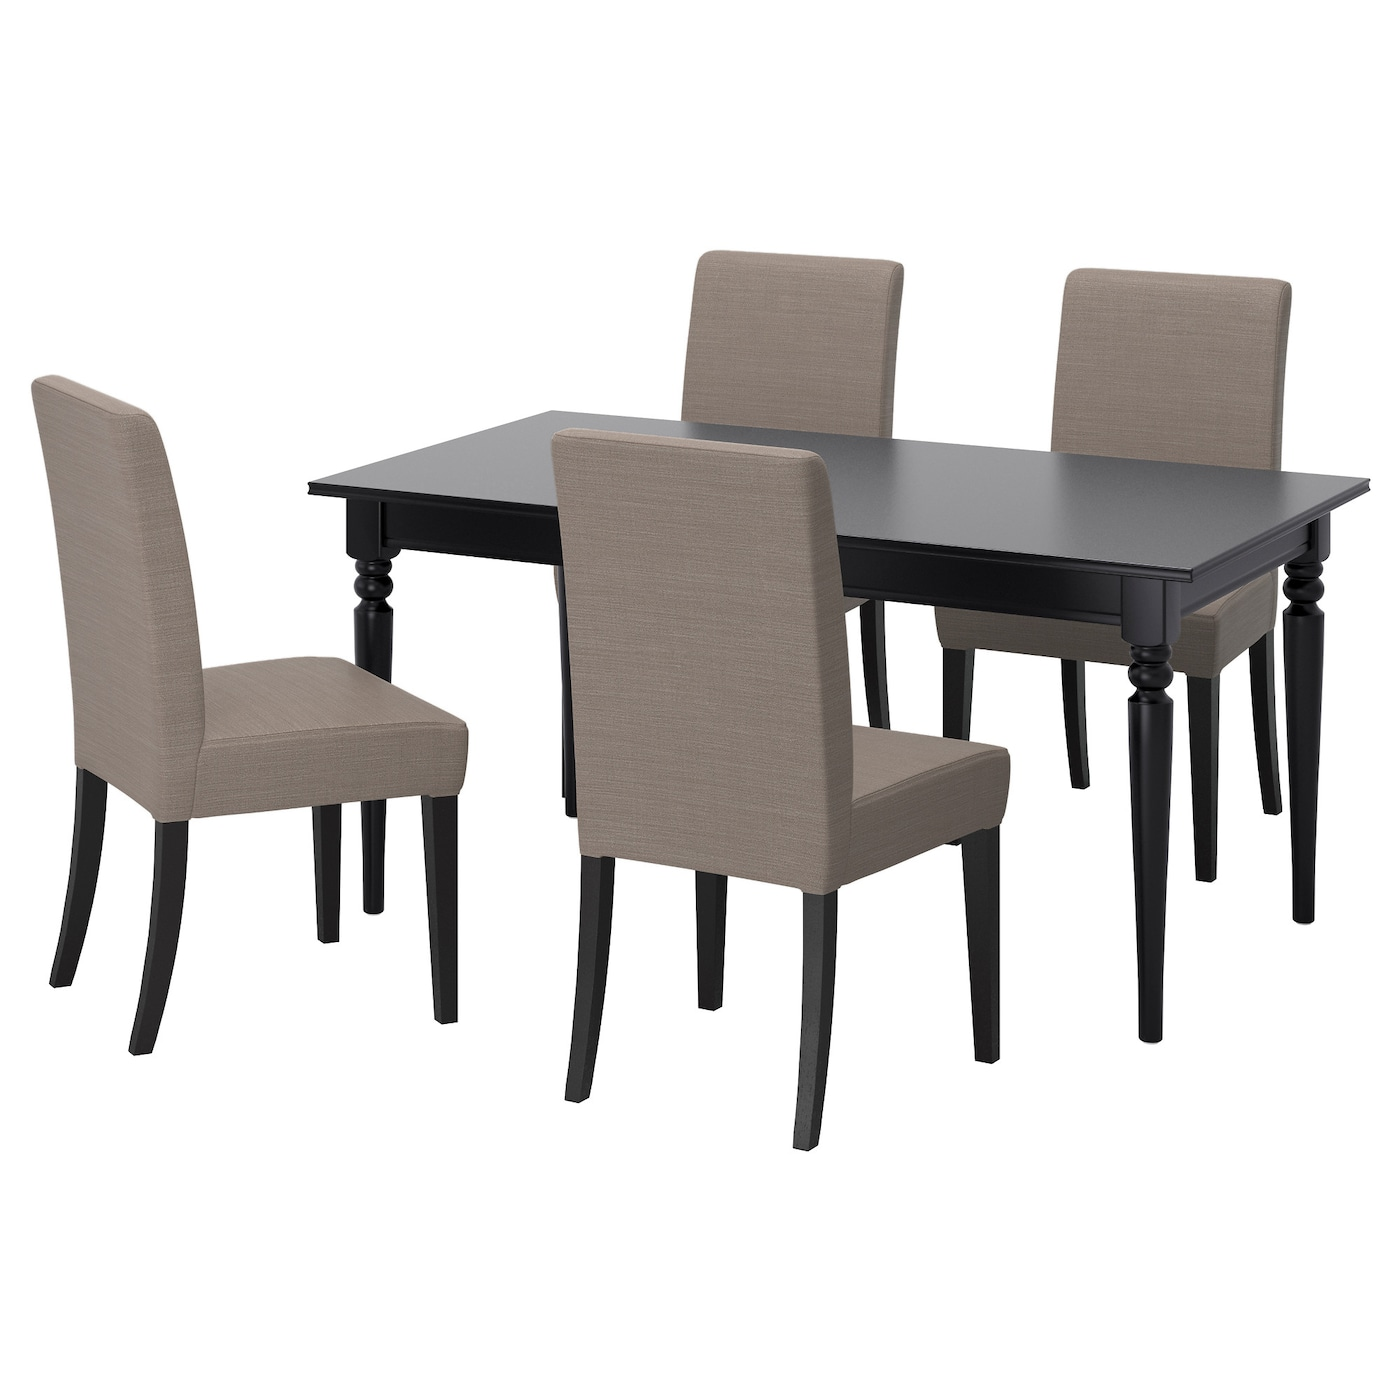 Ingatorp henriksdal table and 4 chairs black nolhaga grey for Table chaise ikea